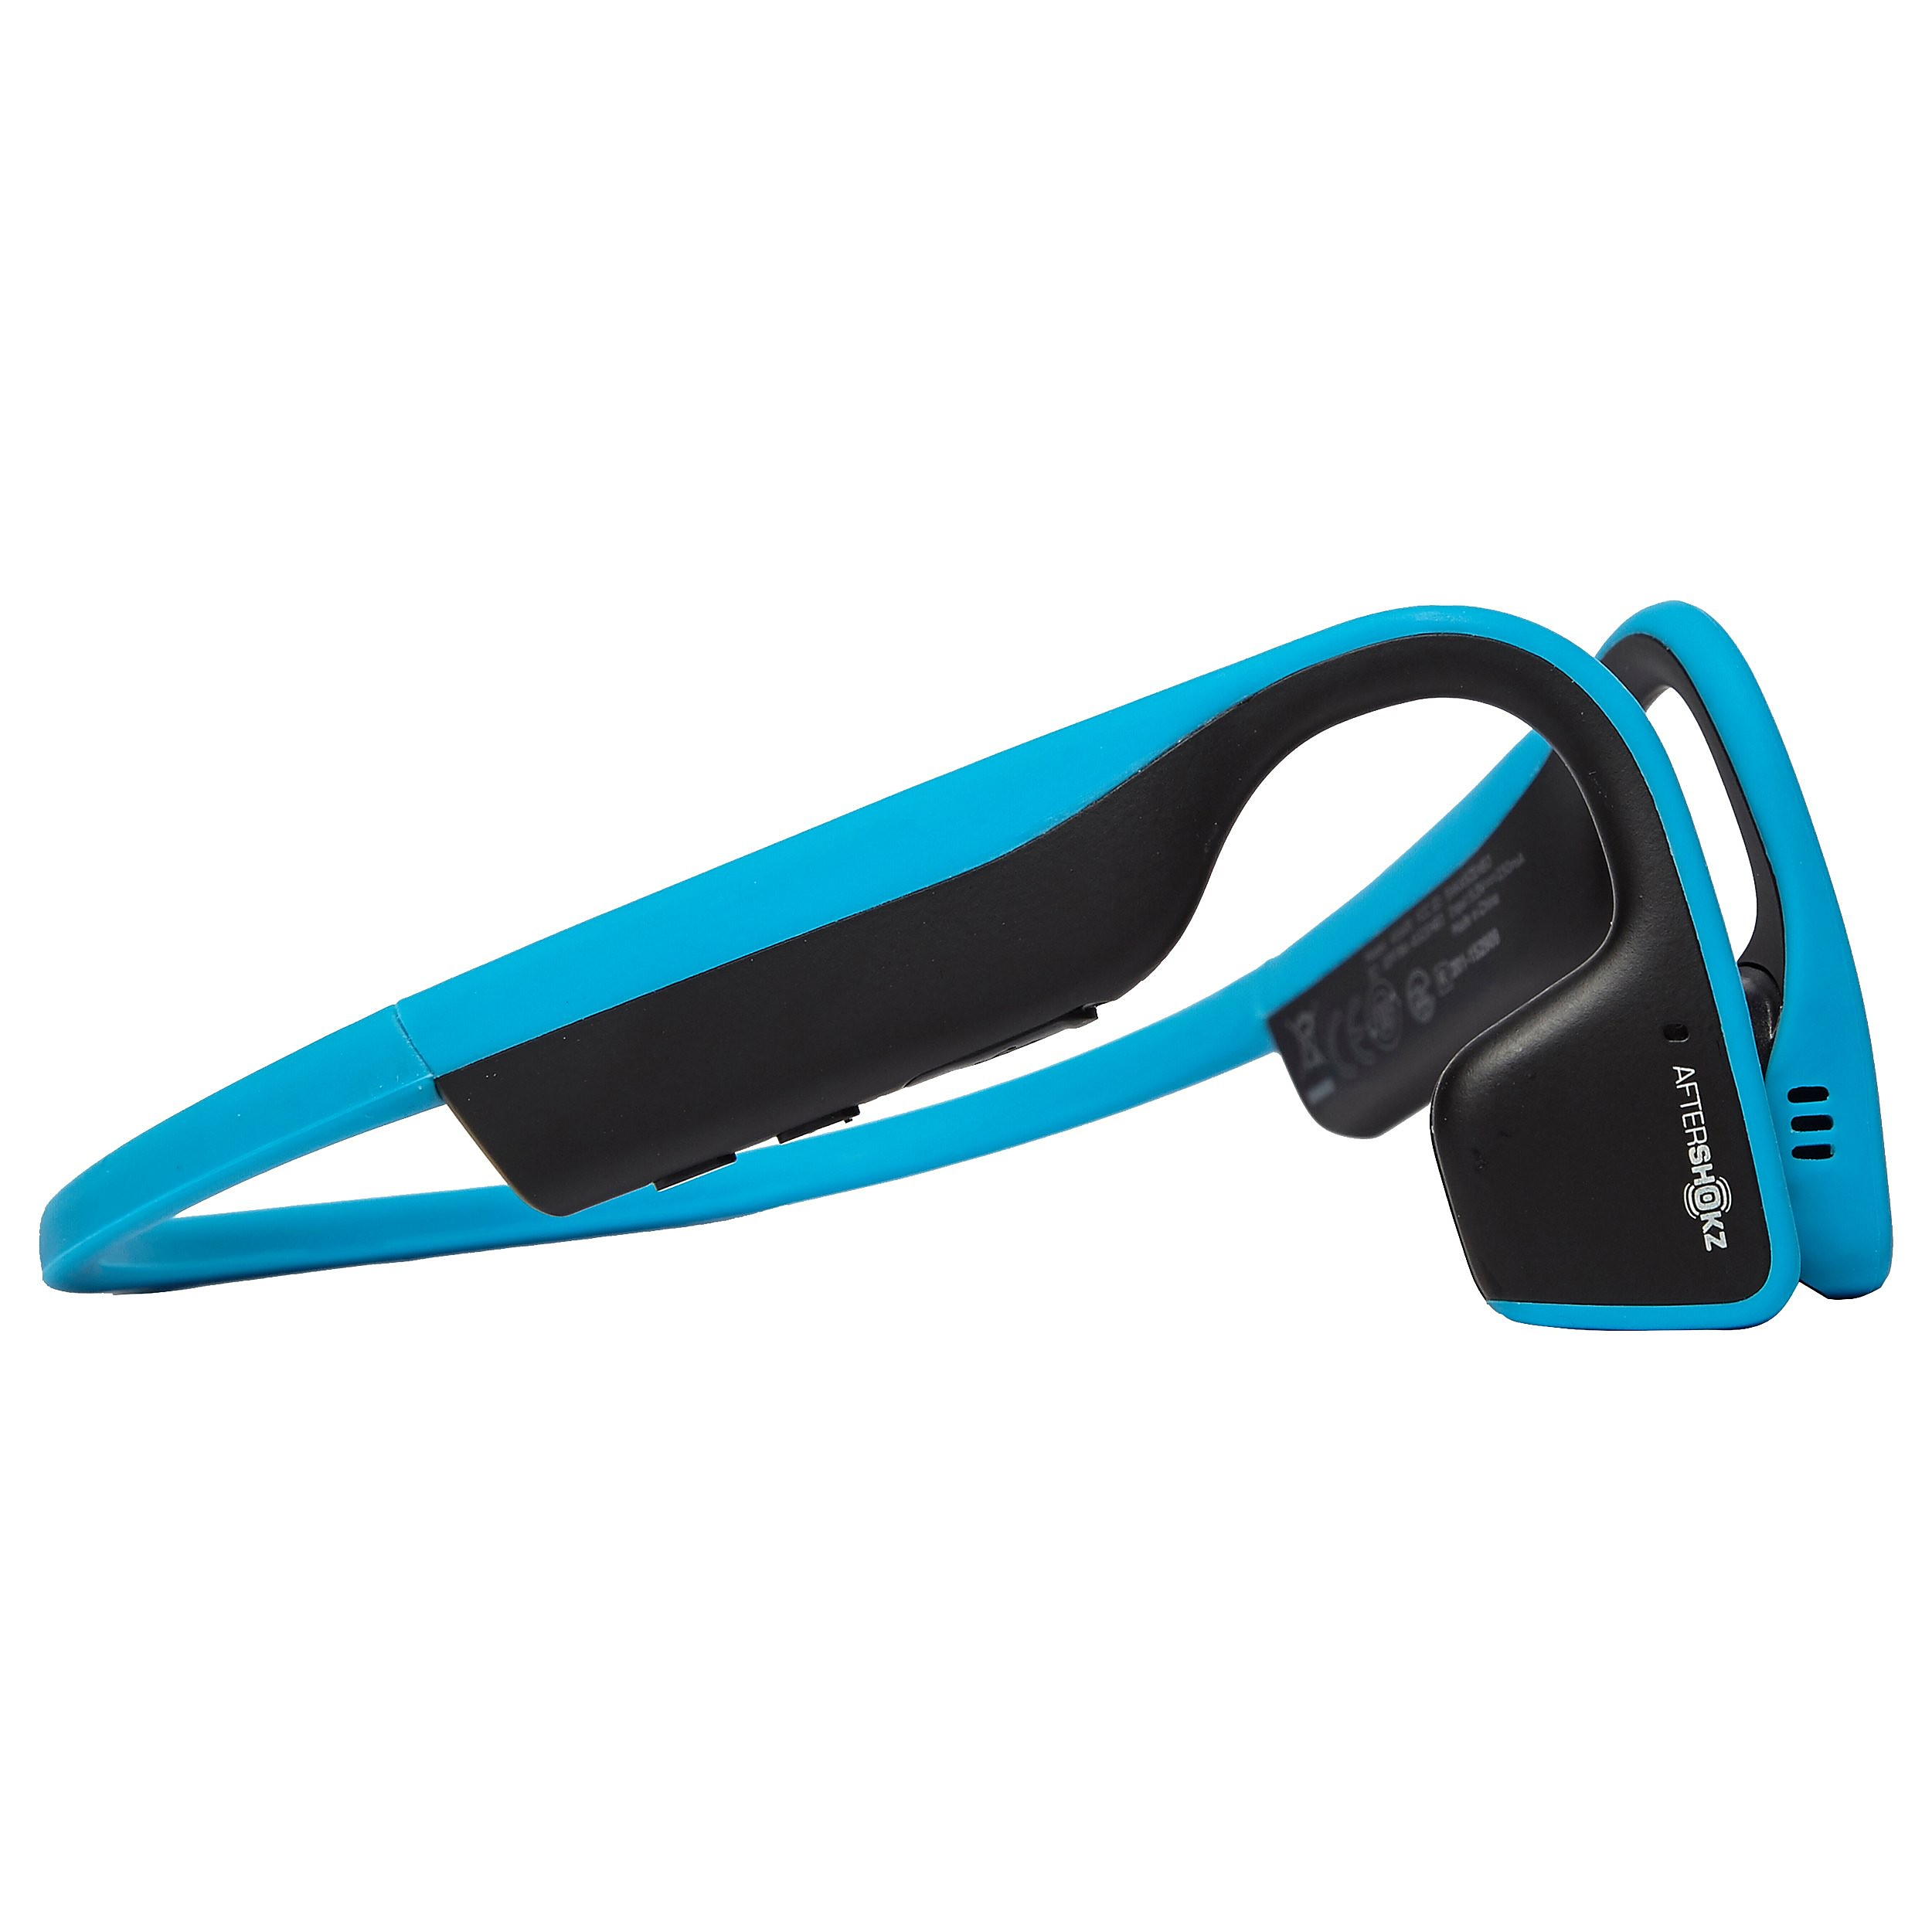 Aftershokz Trekz Titanium Running Headphones